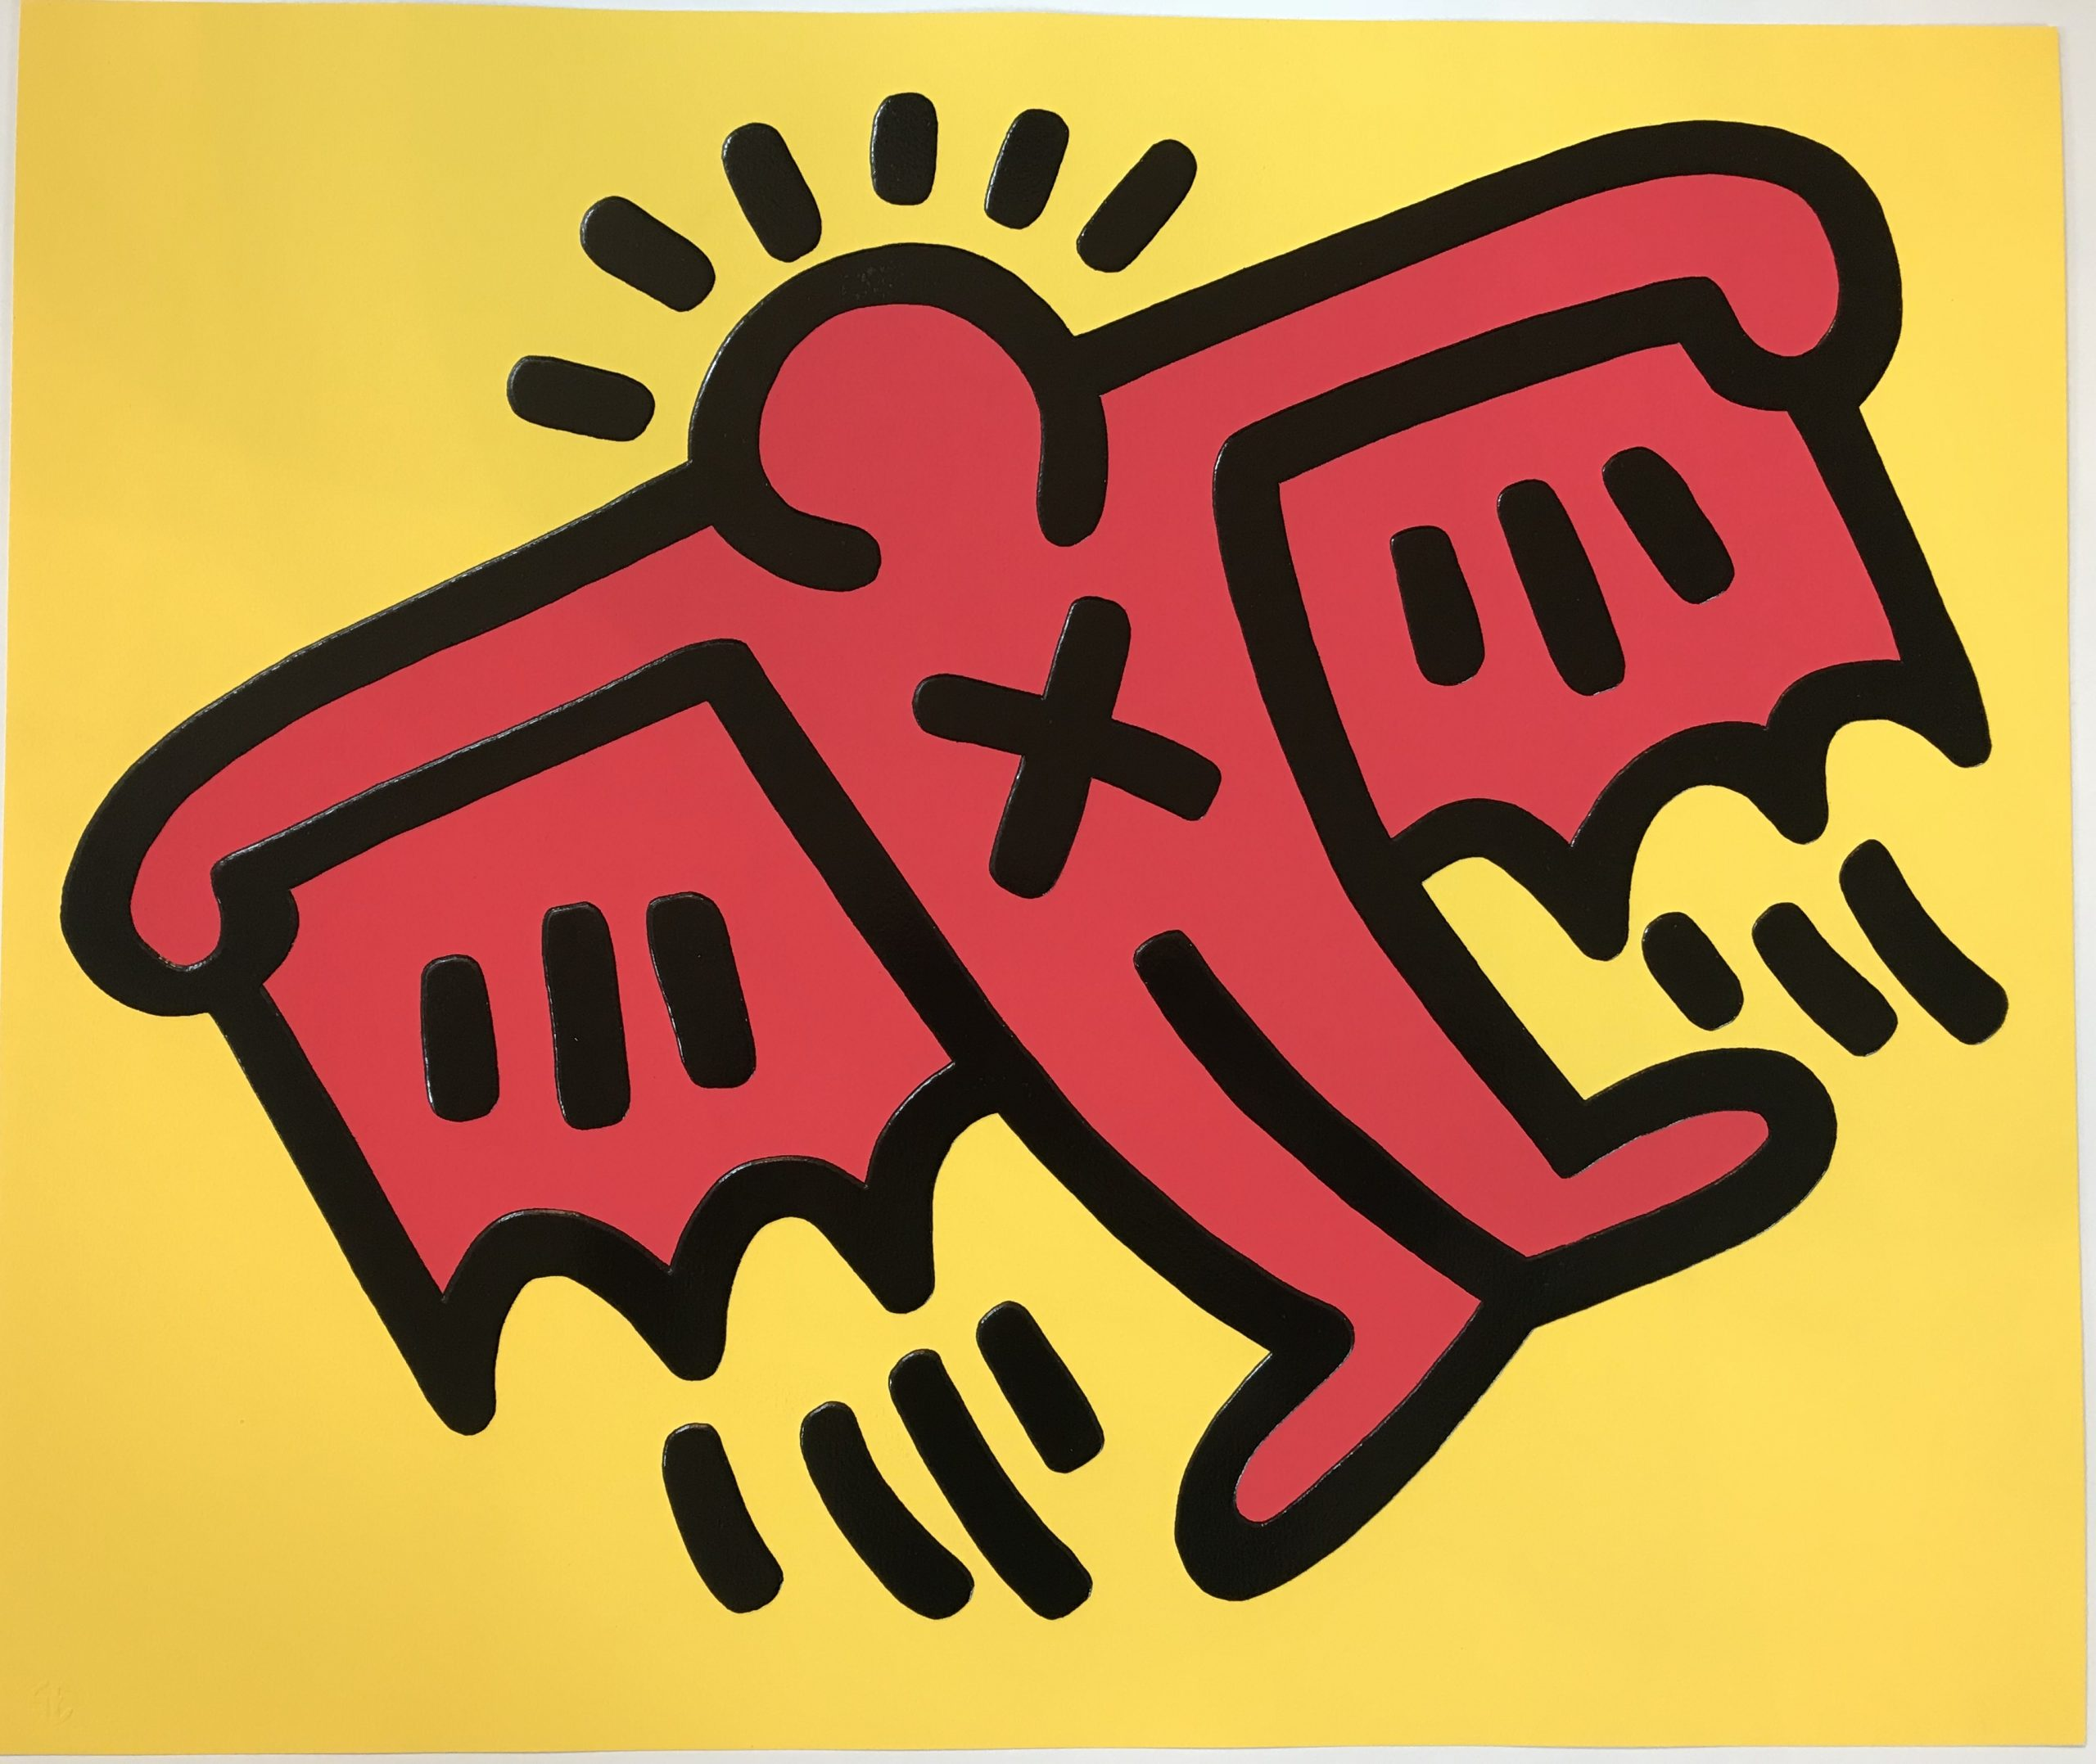 X-man From Icons Portfolio 1990 by Keith Haring